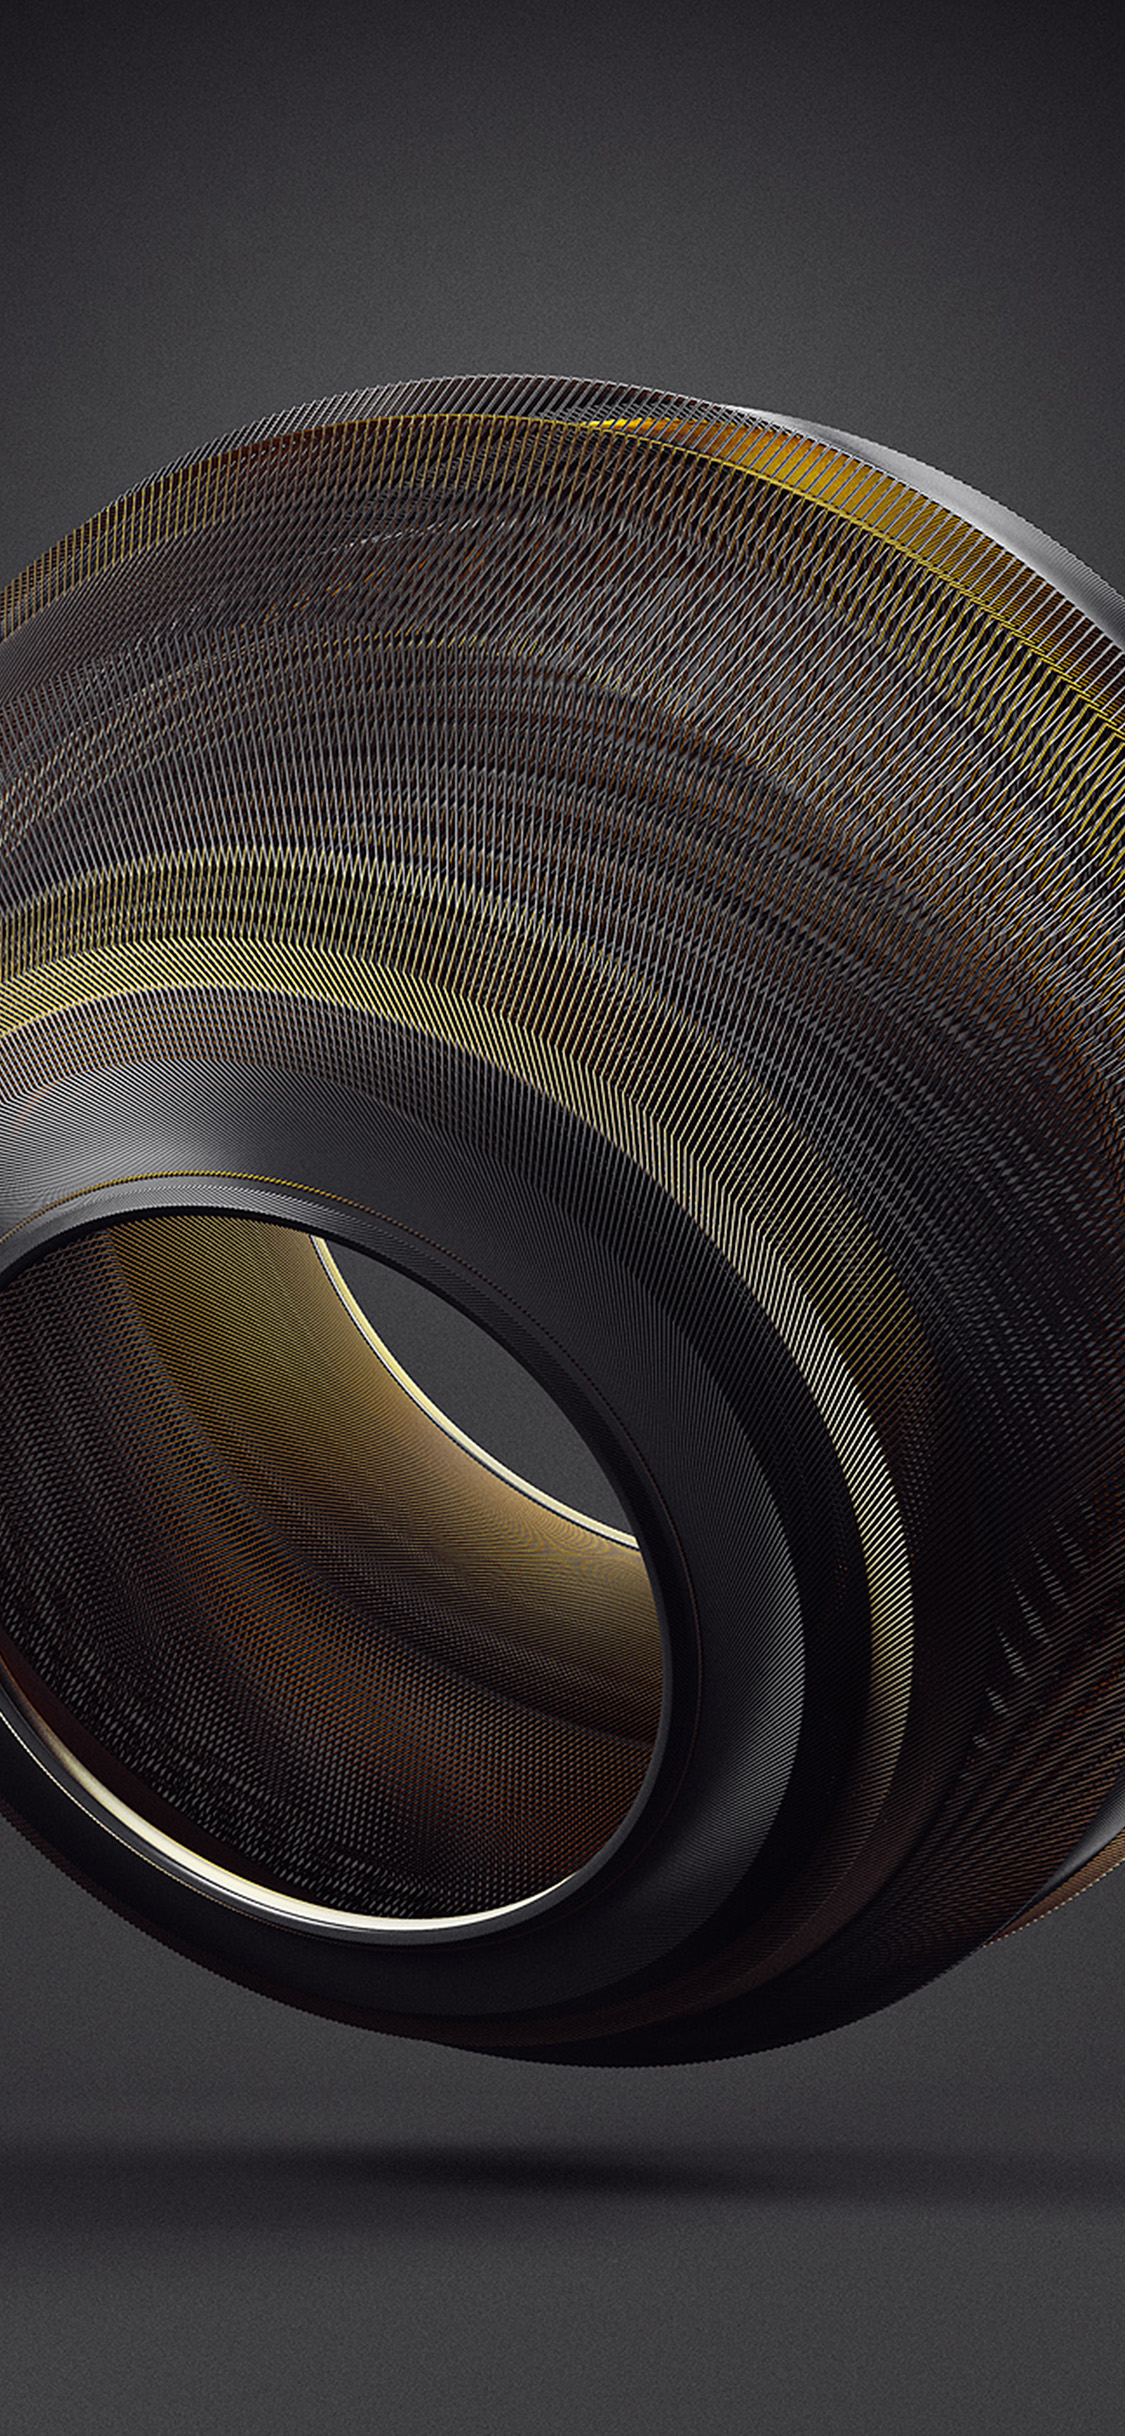 iPhonexpapers.com-Apple-iPhone-wallpaper-wd48-pattern-background-circle-abstract-3d